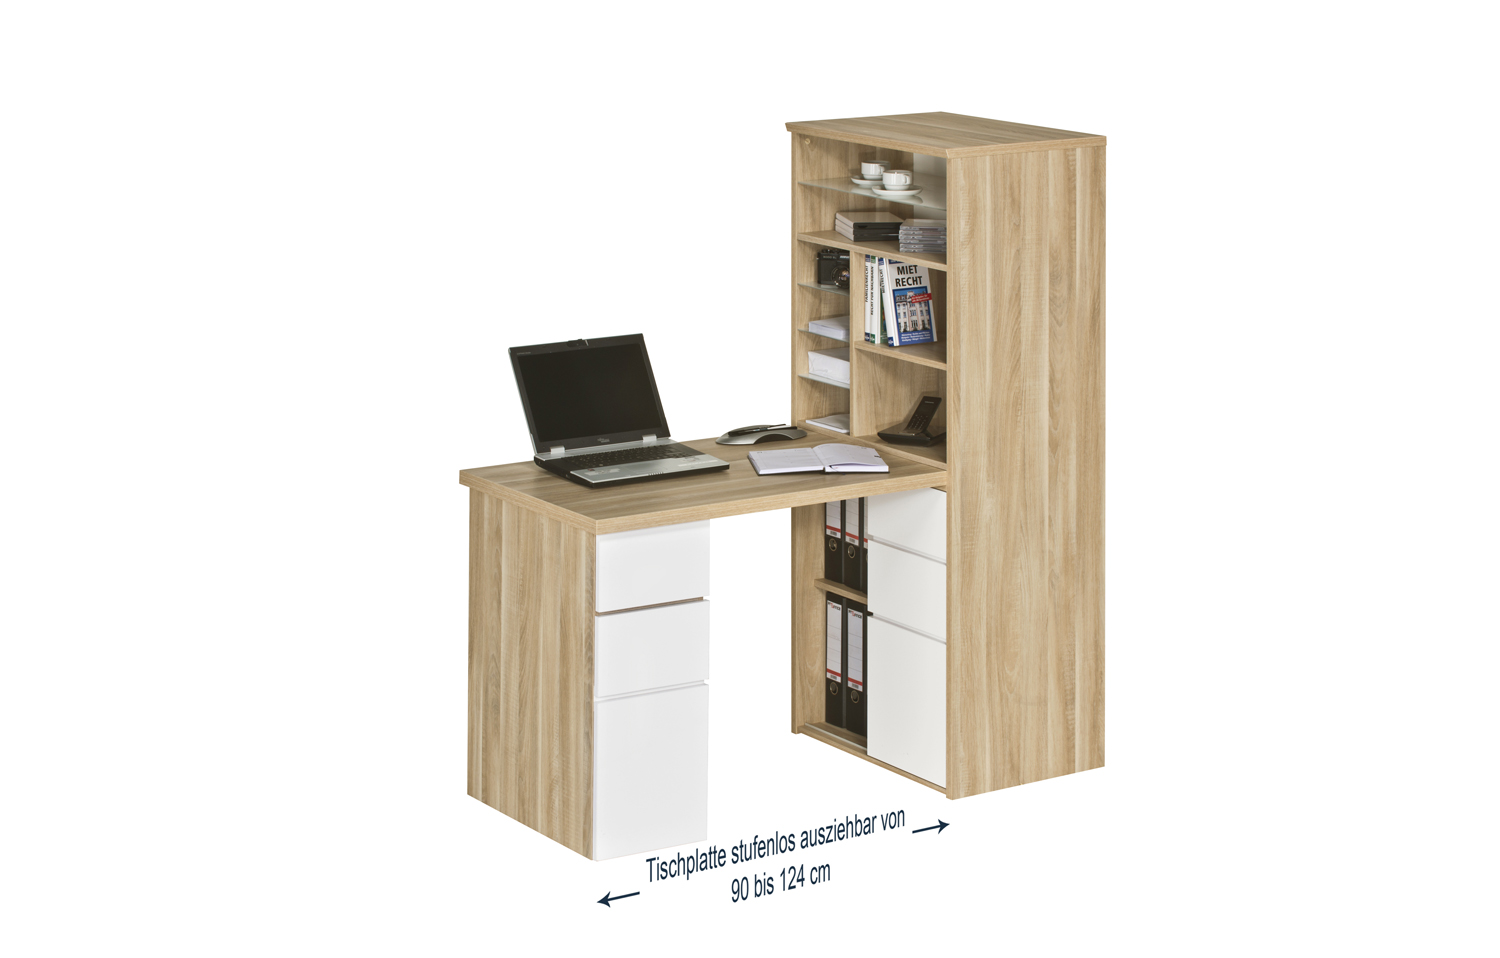 minioffice raumteiler schreibtisch regal mod mj088 eiche. Black Bedroom Furniture Sets. Home Design Ideas